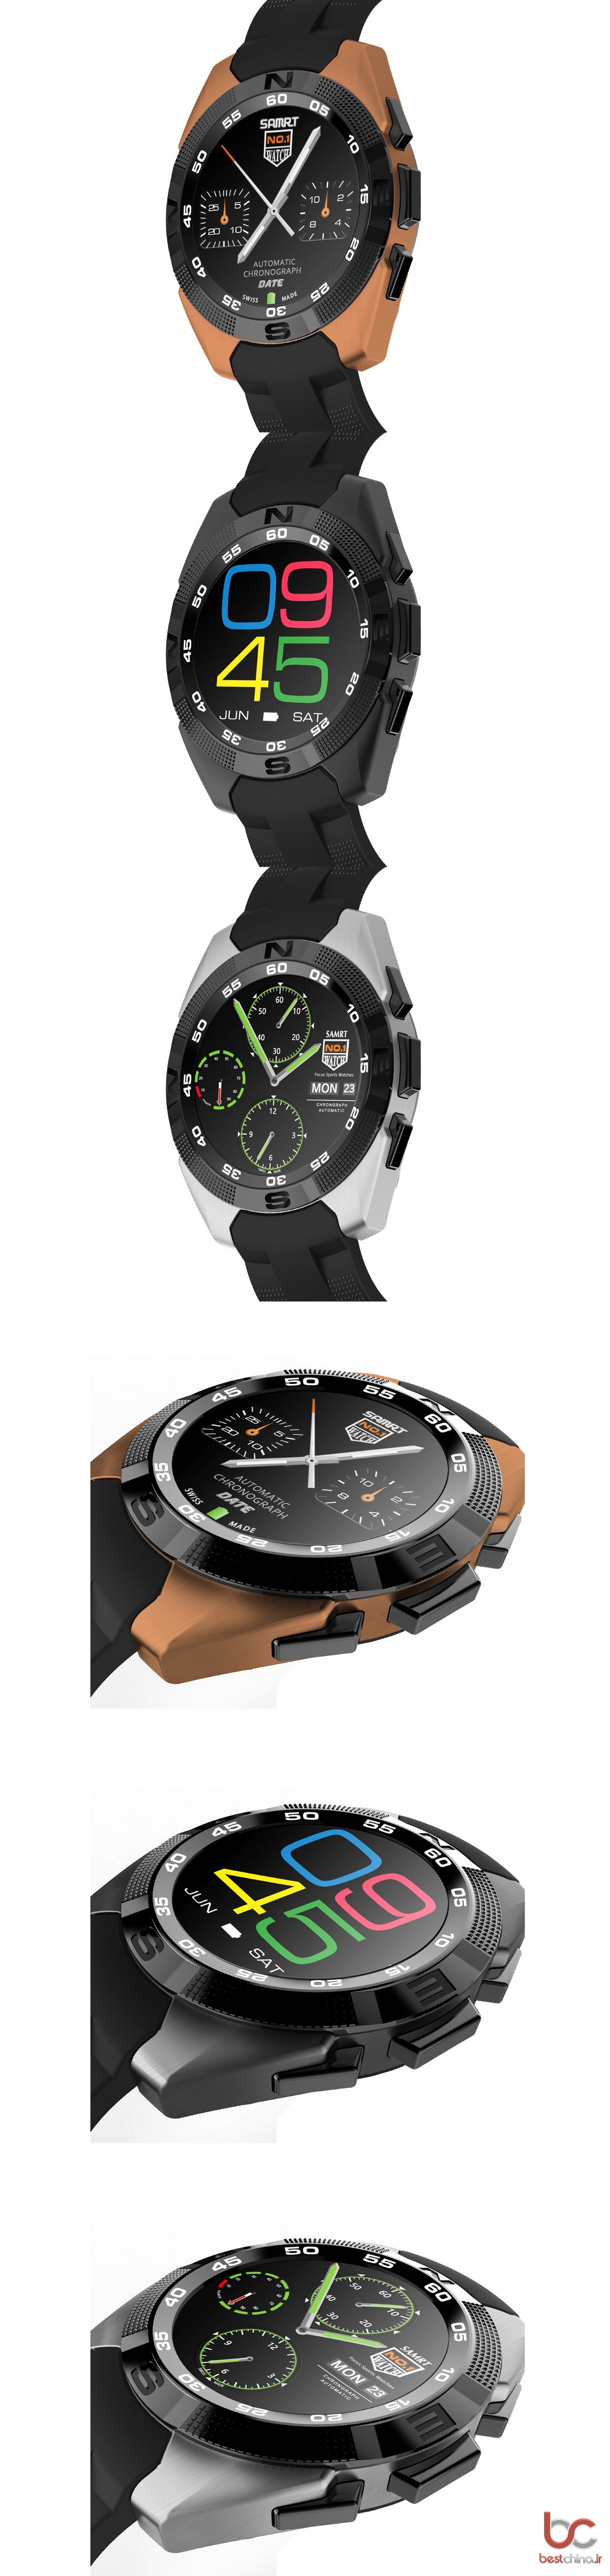 NO.1 G5 Smartwatch (10)